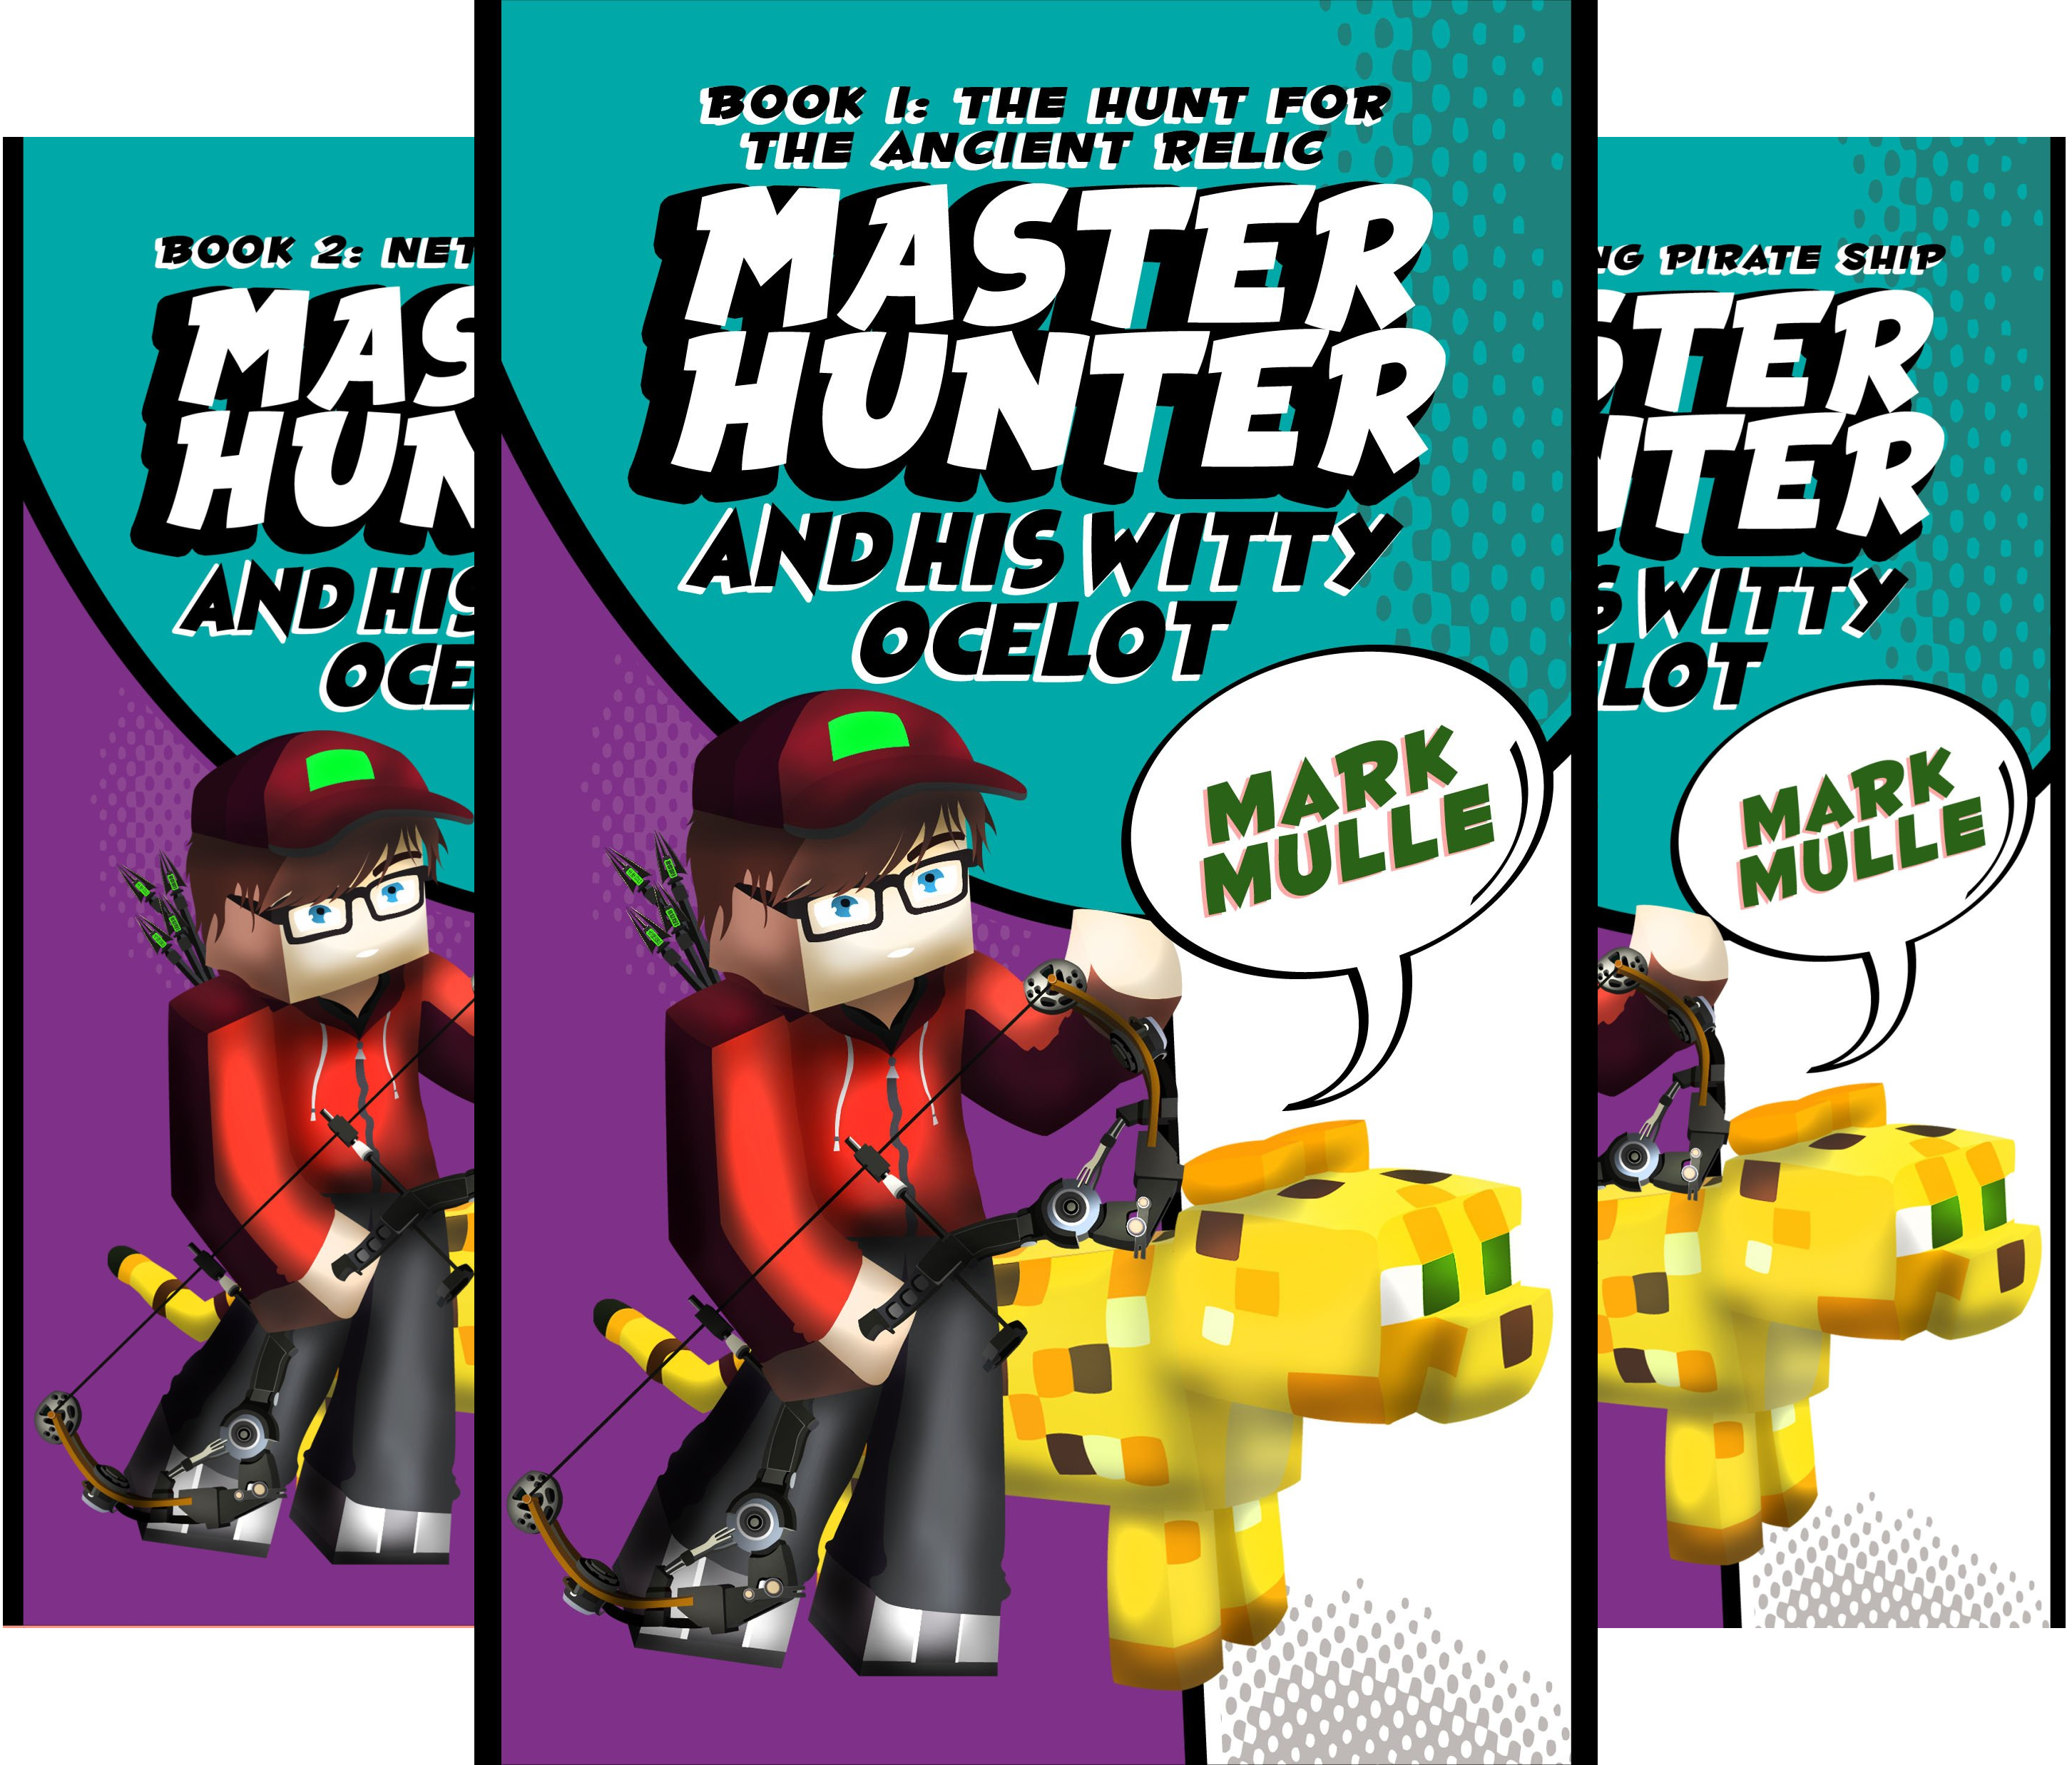 The Master Hunter and His Witty Ocelot (9 Book Series)